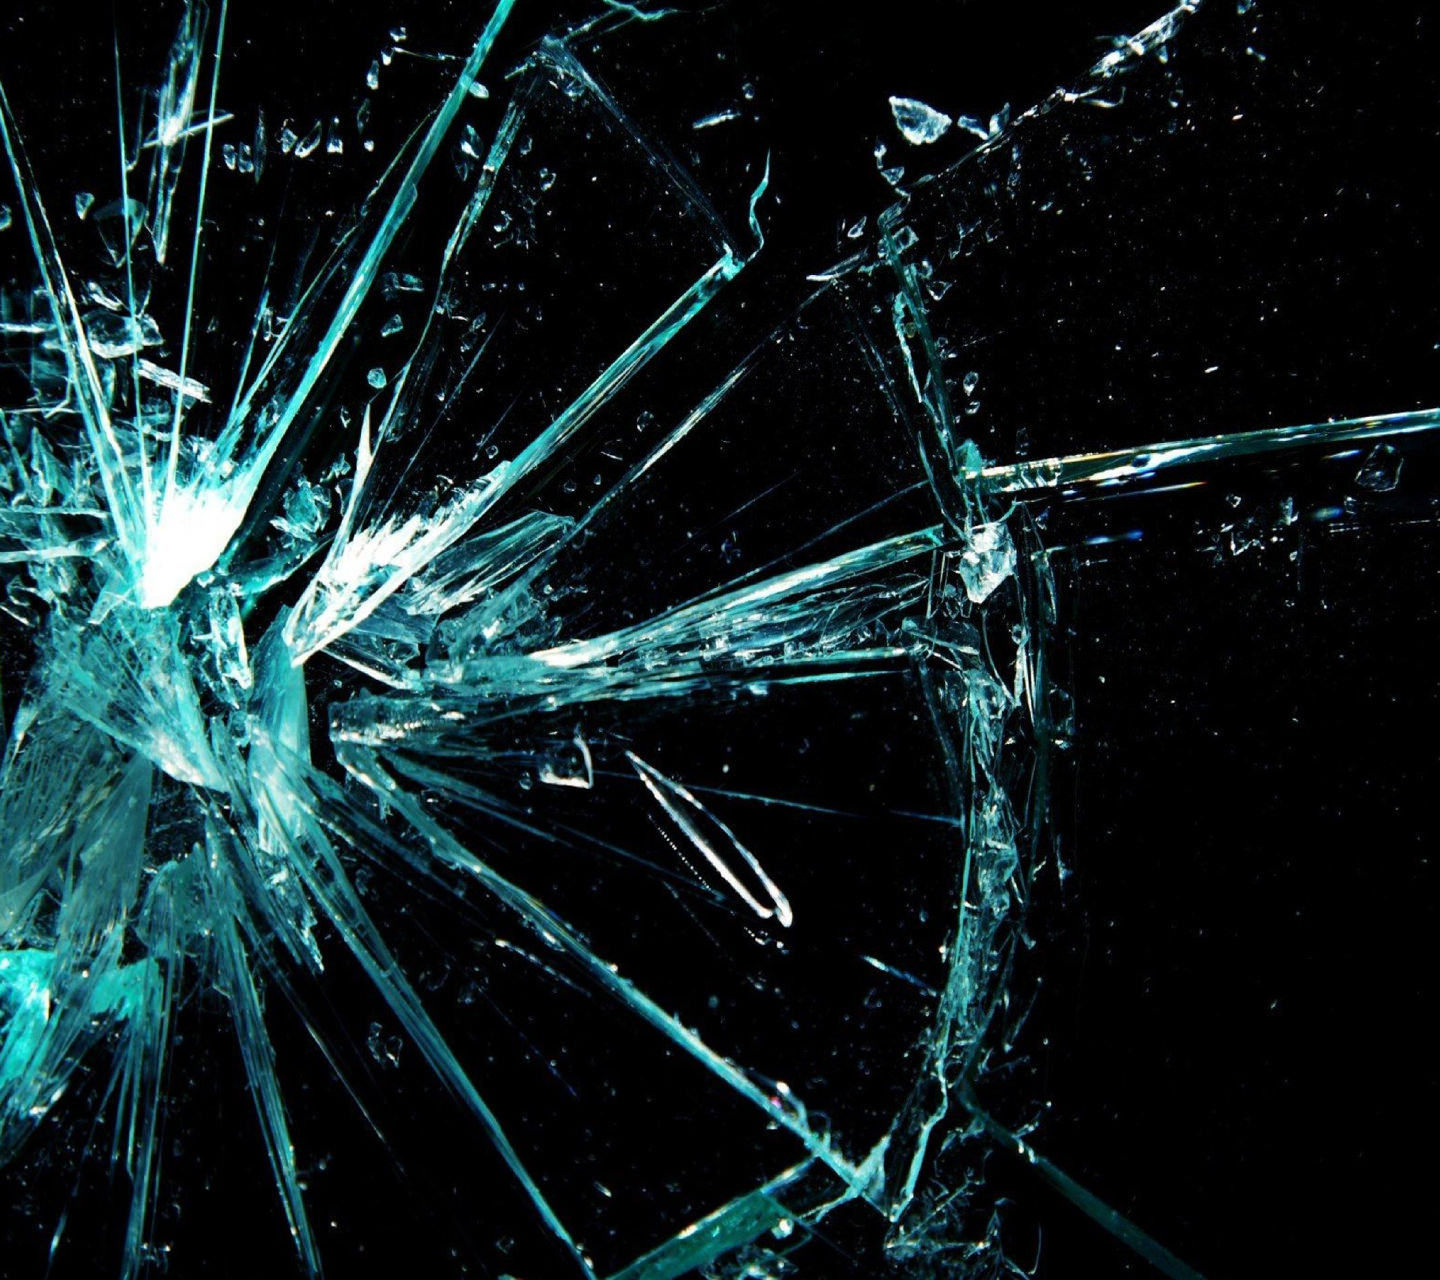 21 Cracked Screen Wallpapers Backgrounds Images